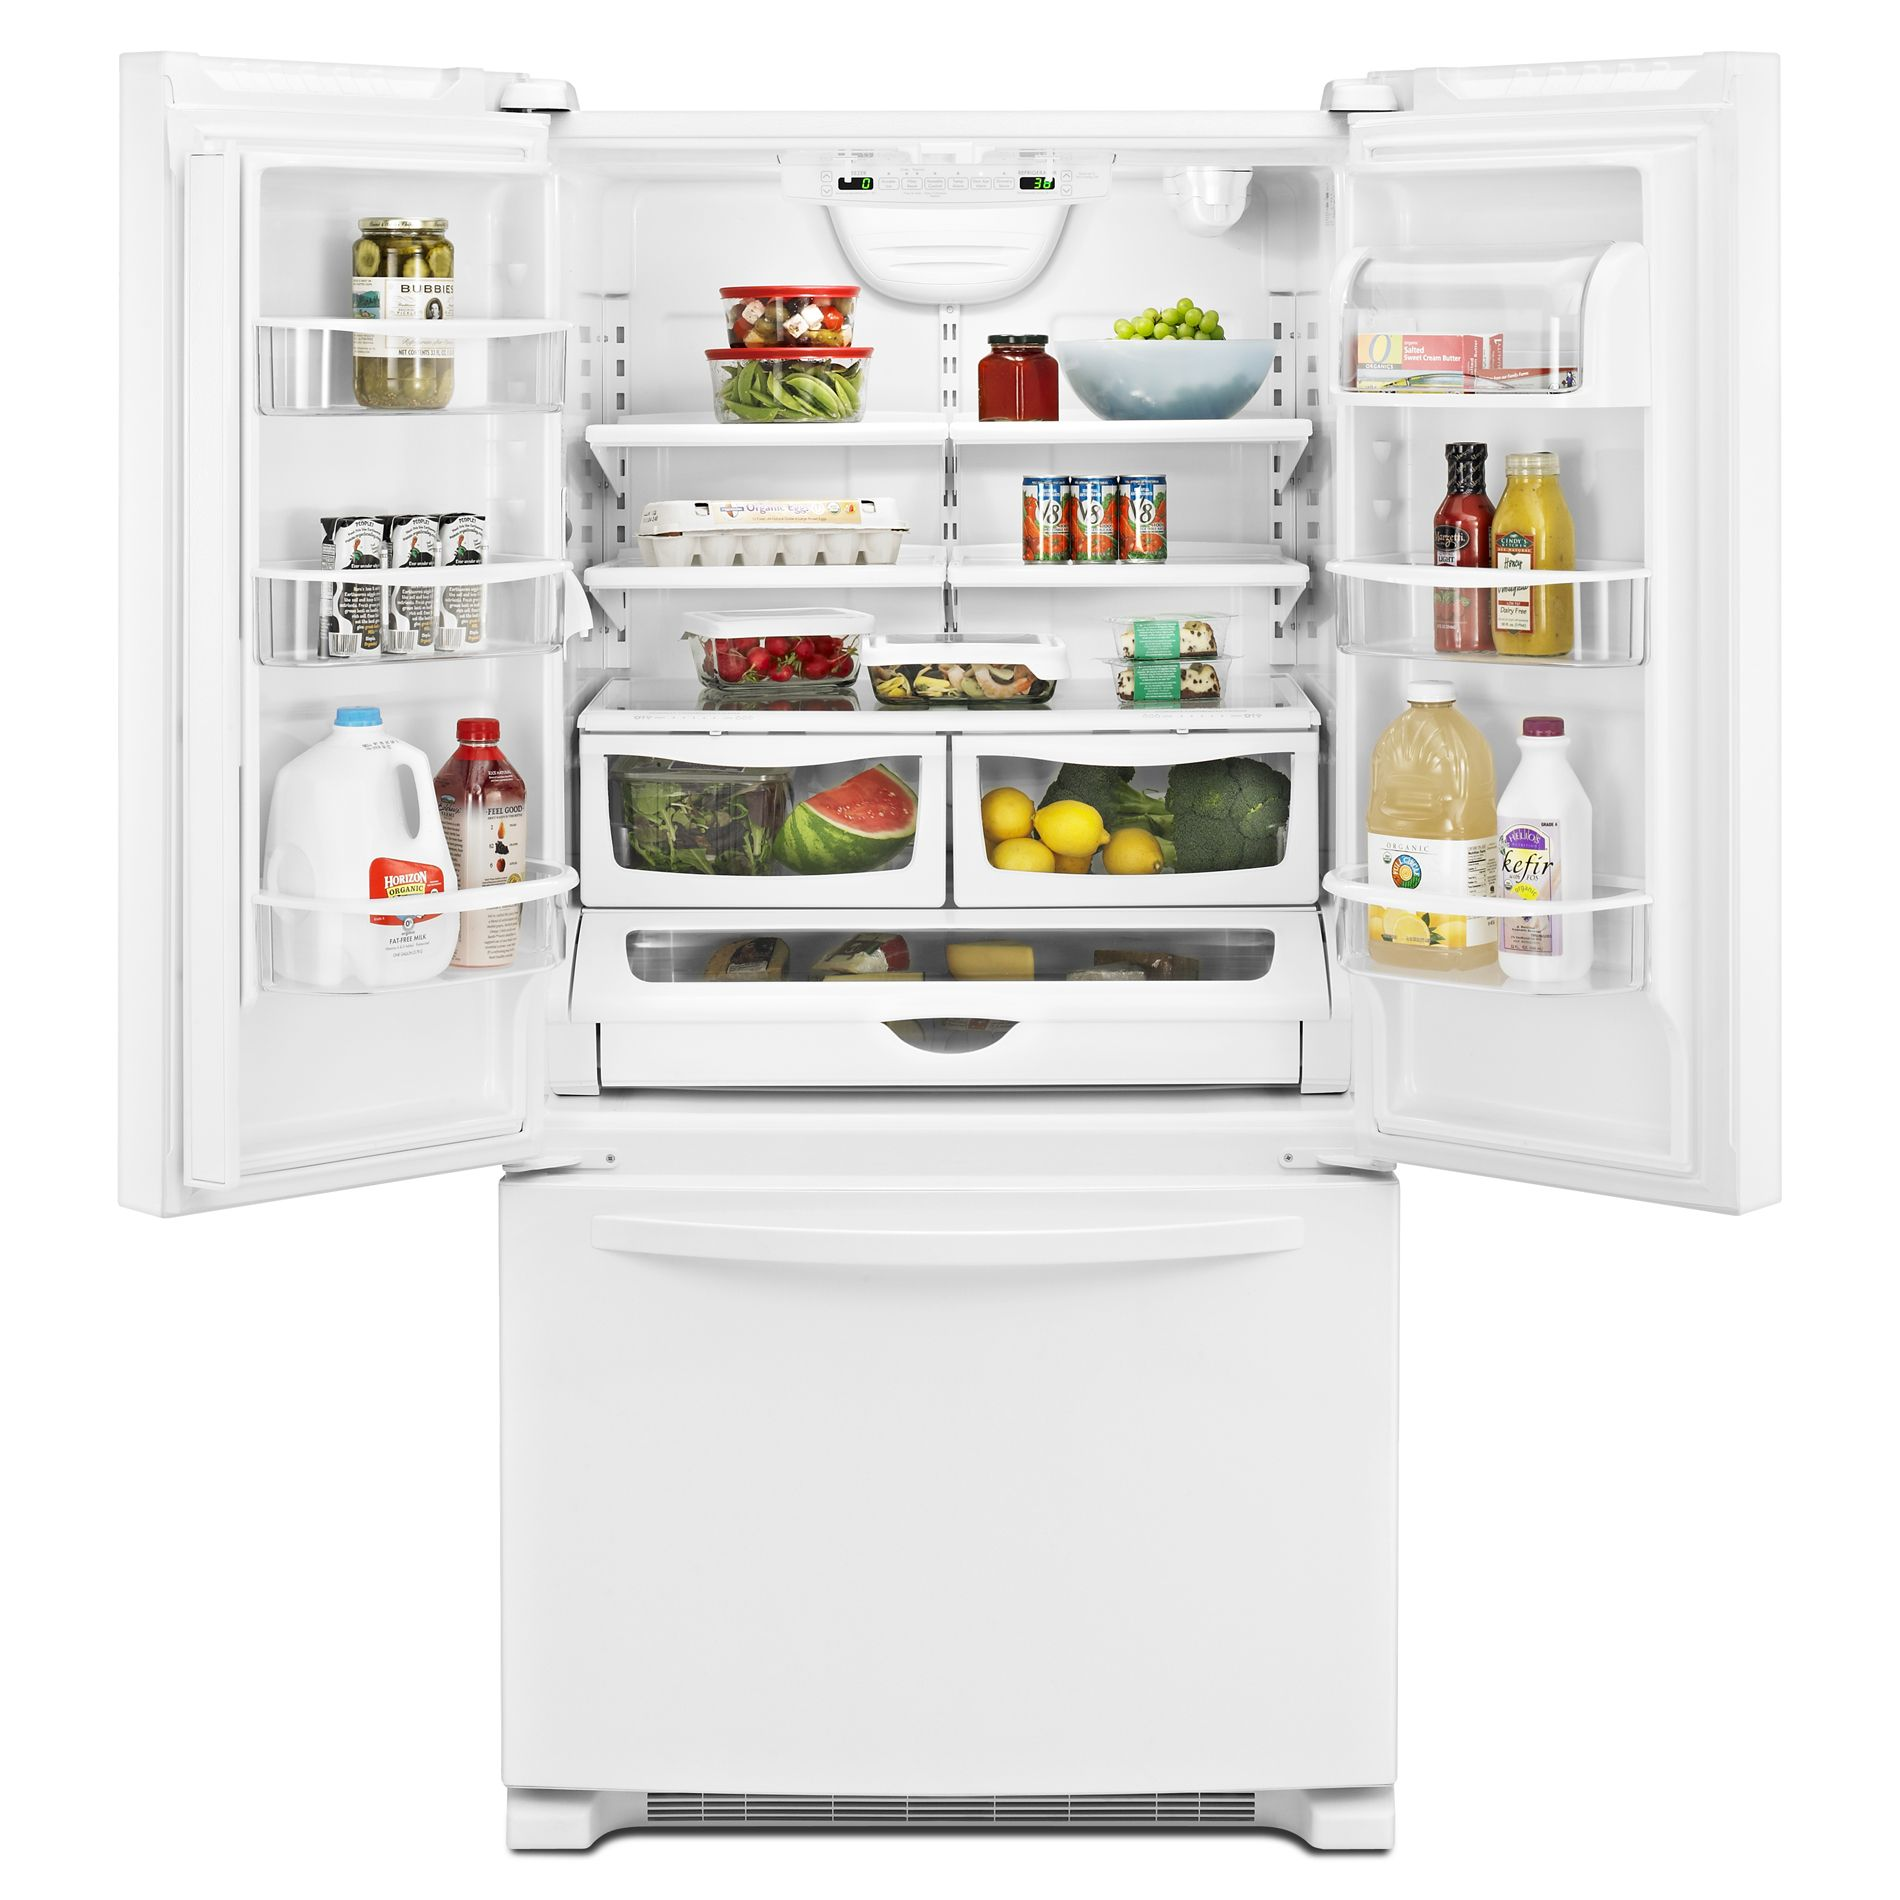 Kenmore 24.8 cu. ft. French Door Bottom-Freezer Refrigerator